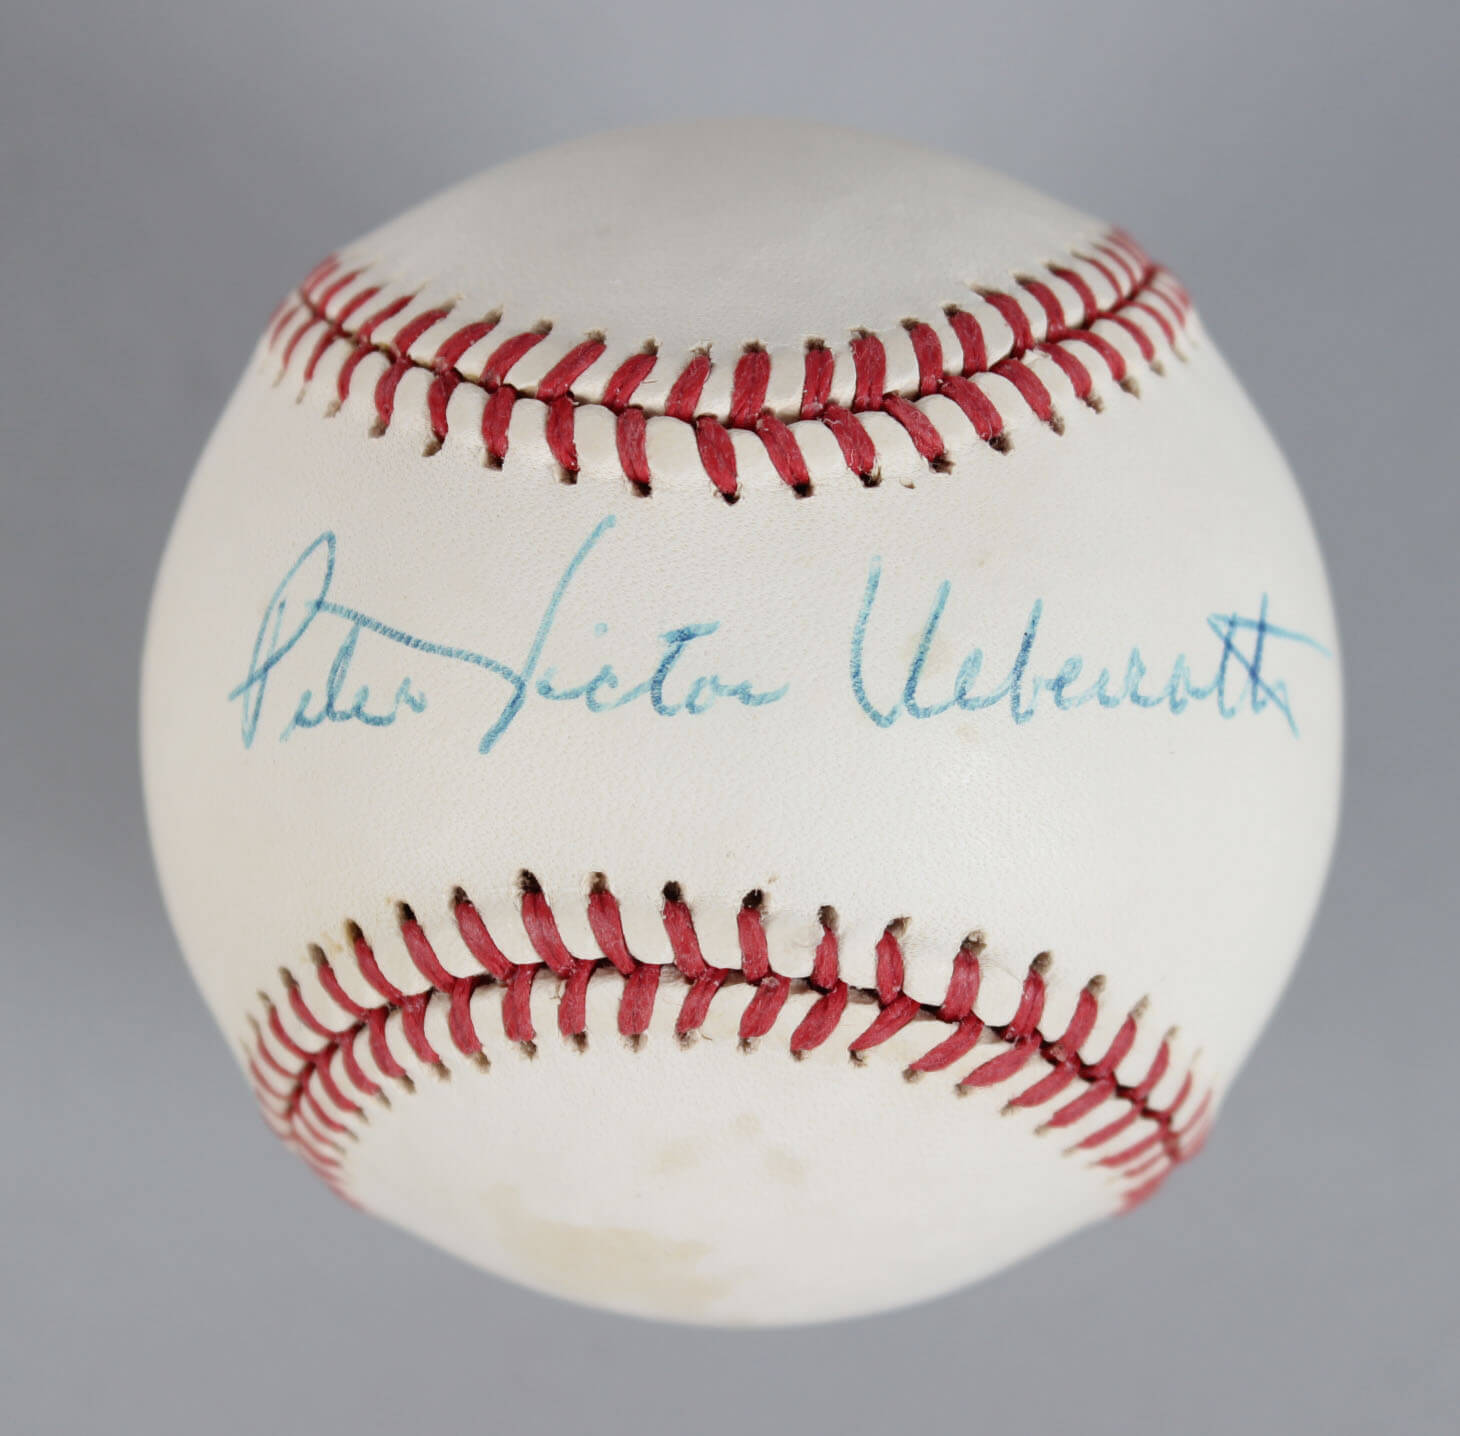 Commissioner – Peter Ueberroth Signed OAL Baseball- COA JSA59389_01